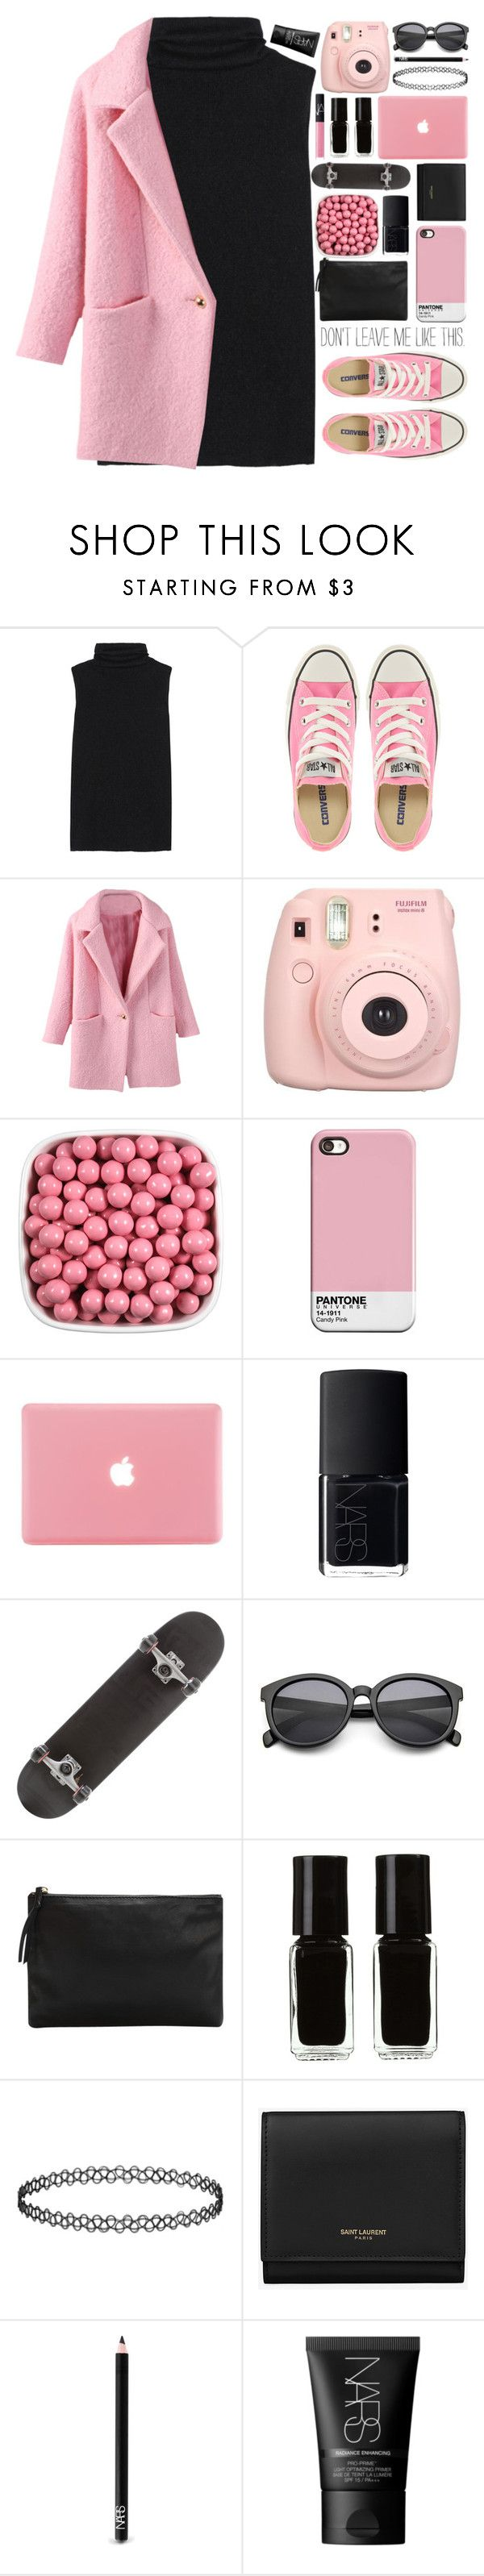 """."" by untake-n ❤ liked on Polyvore featuring The Row, Converse, Fujifilm, NARS Cosmetics, MANGO, The New Black, Topshop and Yves Saint Laurent"